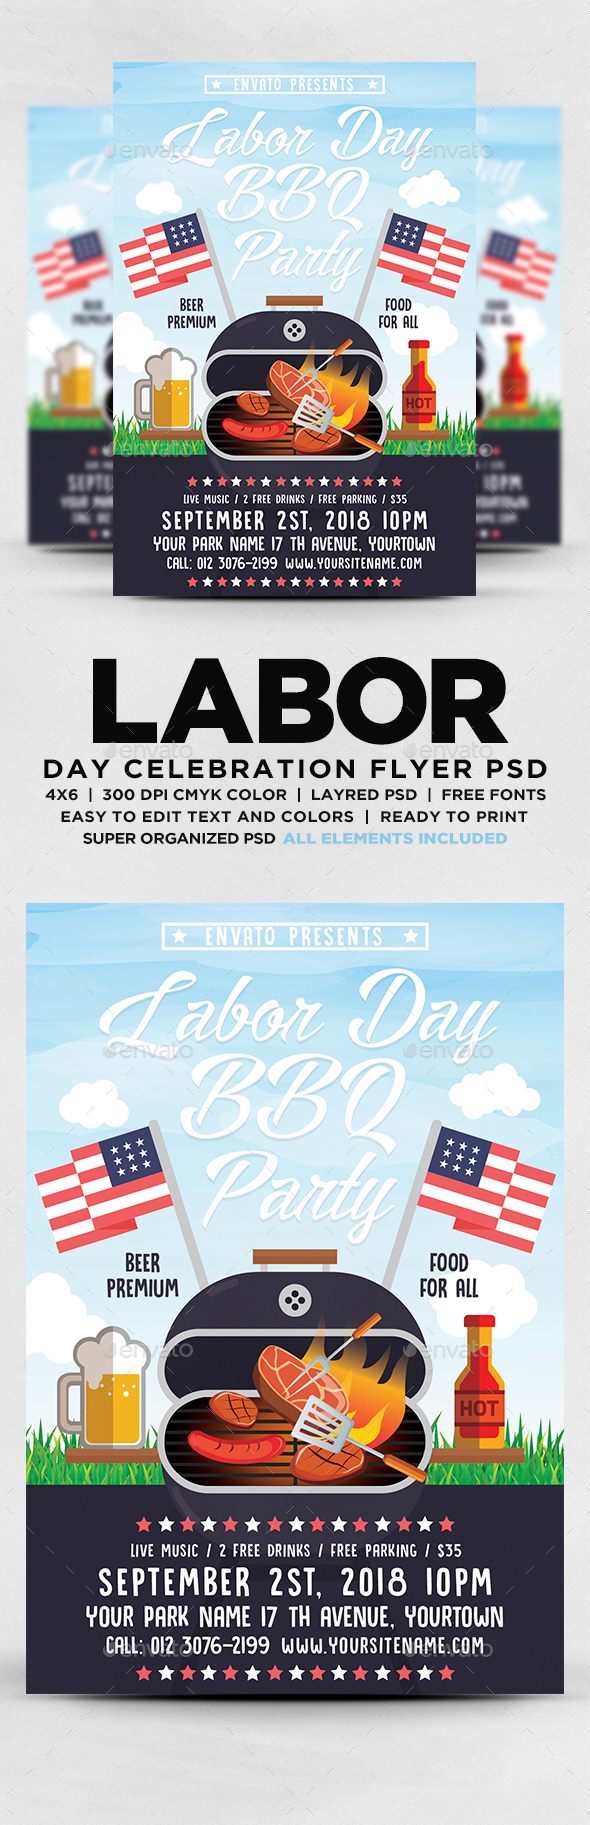 GraphicRiver Labor Day BBQ Party Flyer 20558157